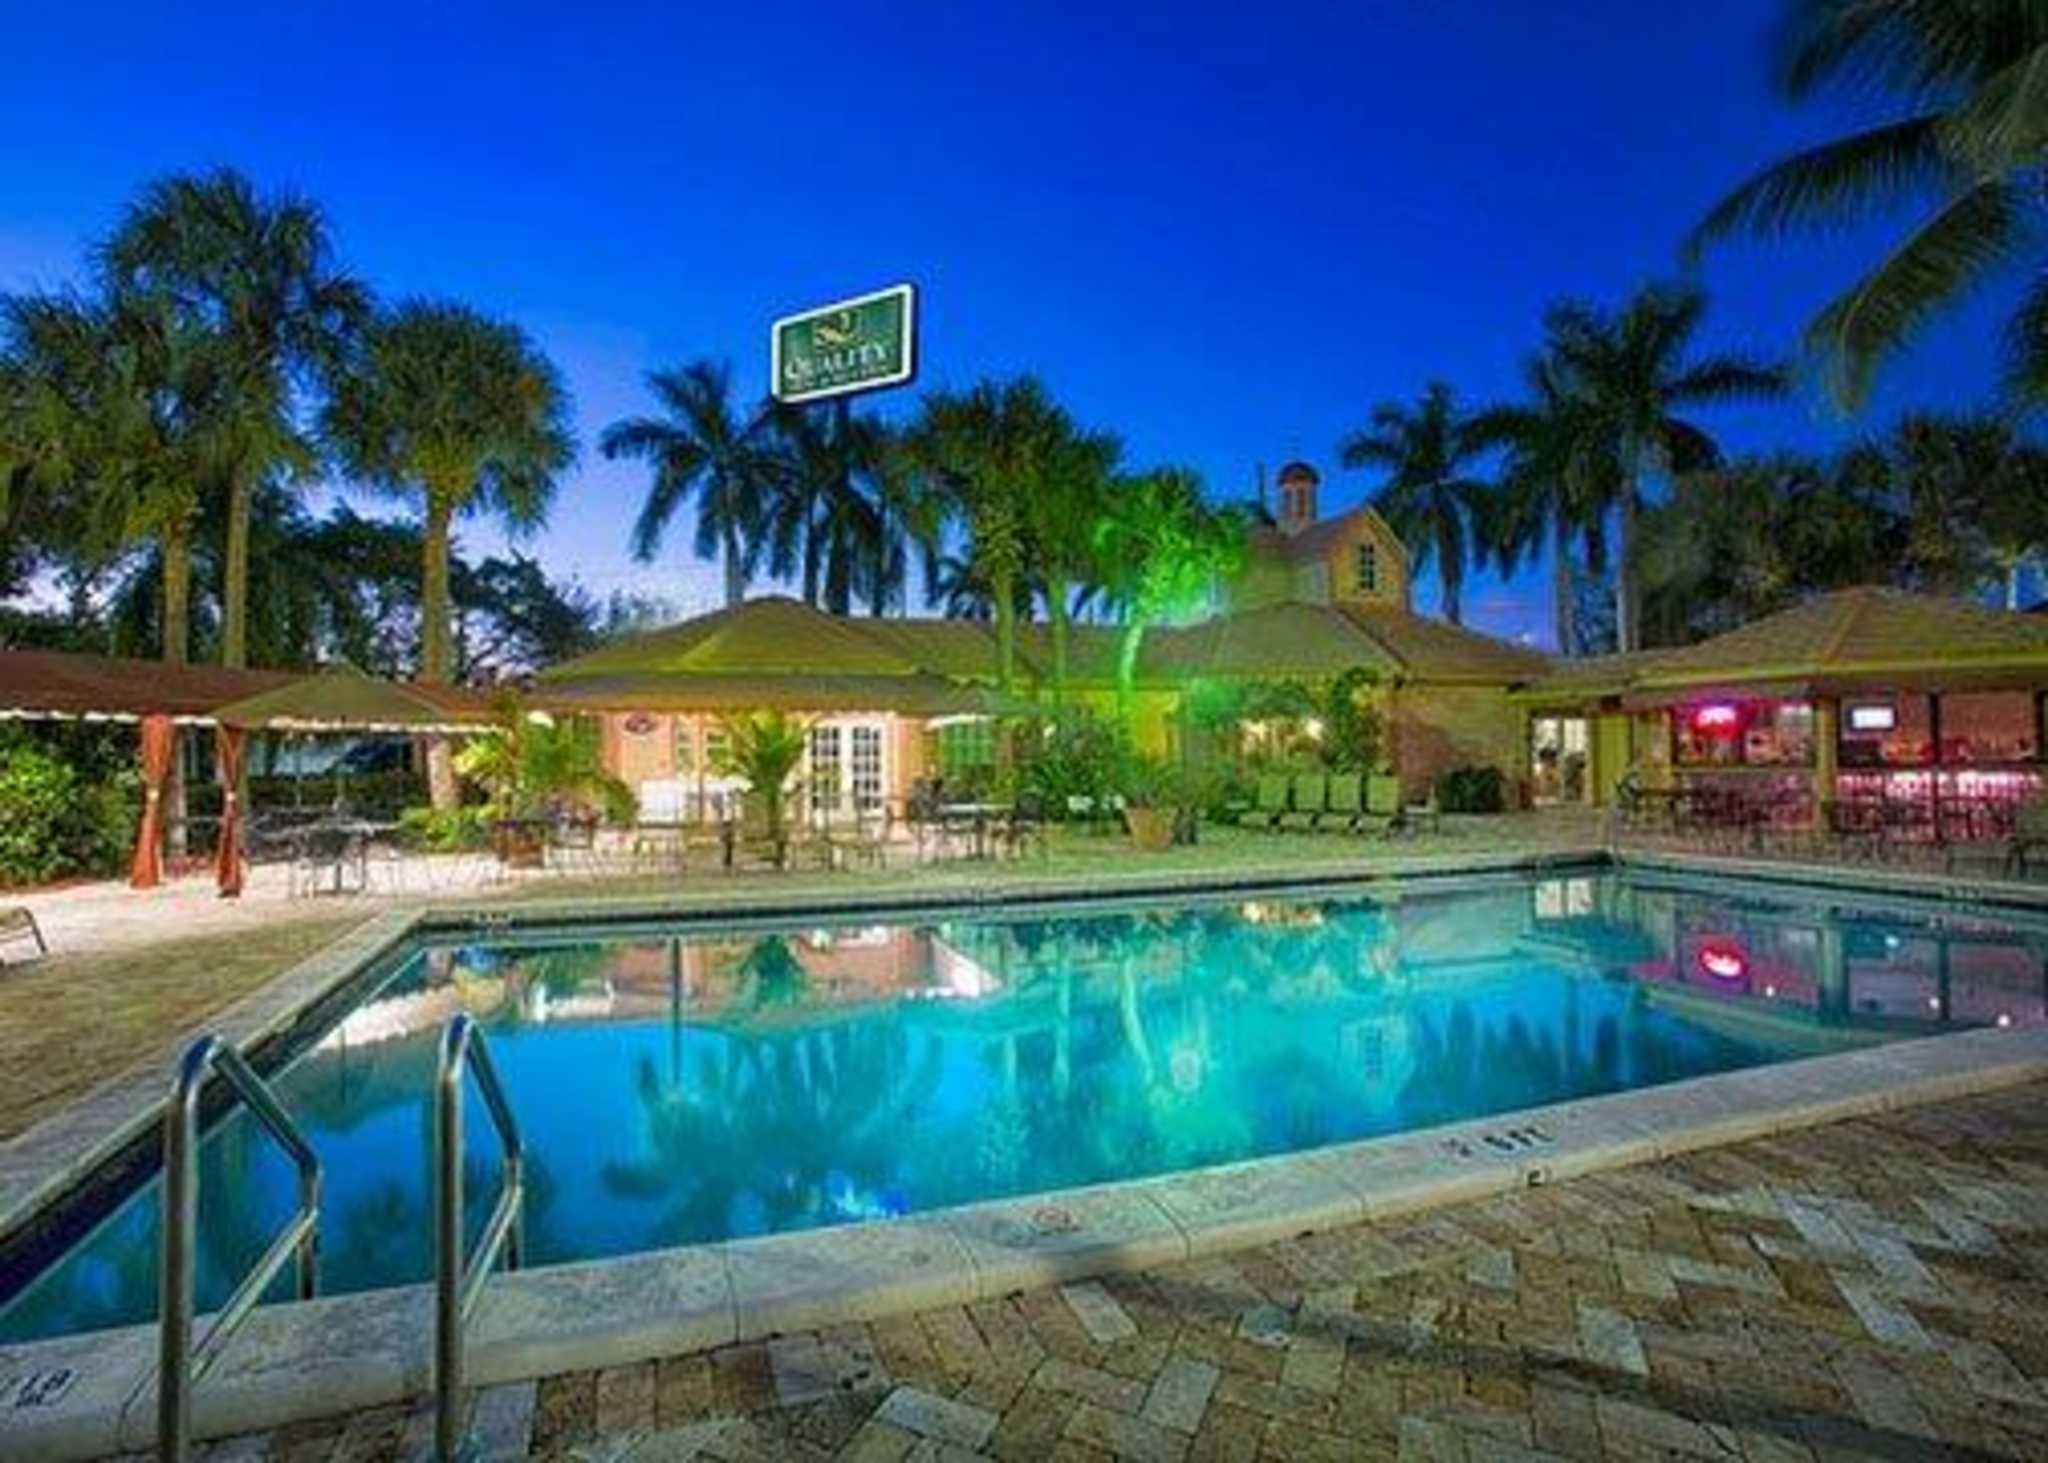 Quality Inn Suites Airport Cruise Port South At 2520 Stirling Rd Hollywood Fl On Fave